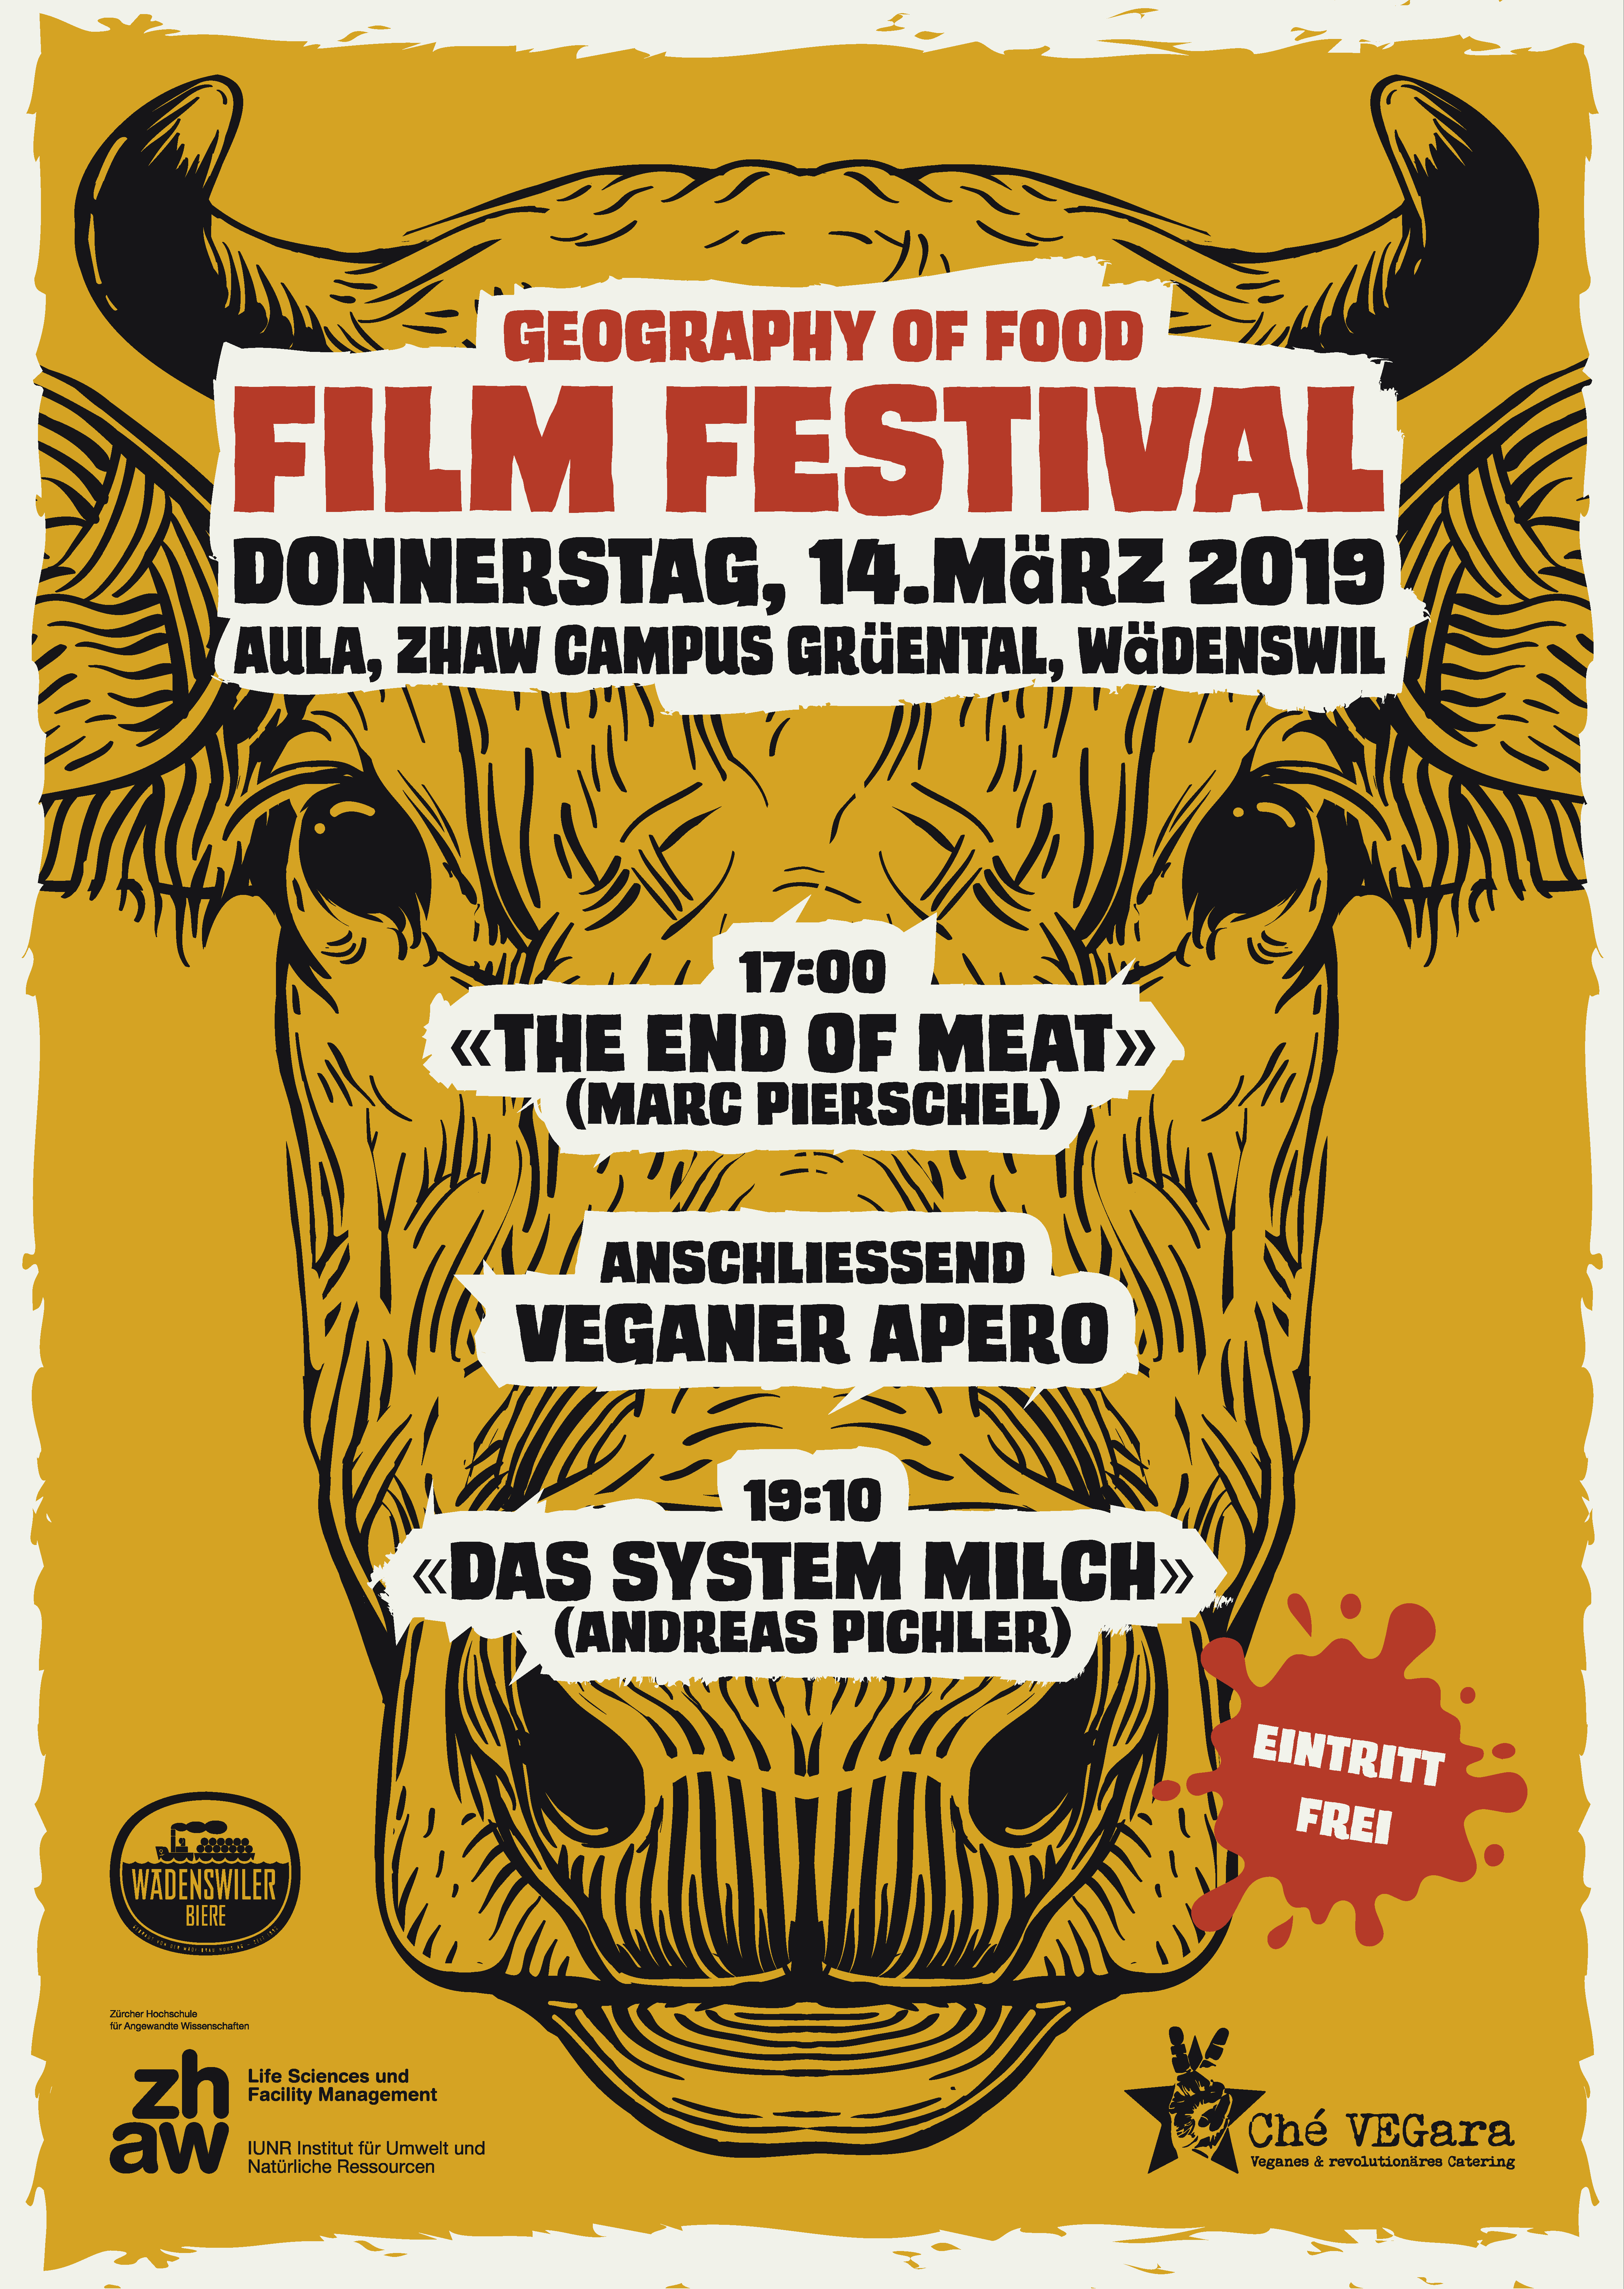 Geography of Food Film Festival 2019 Flyer